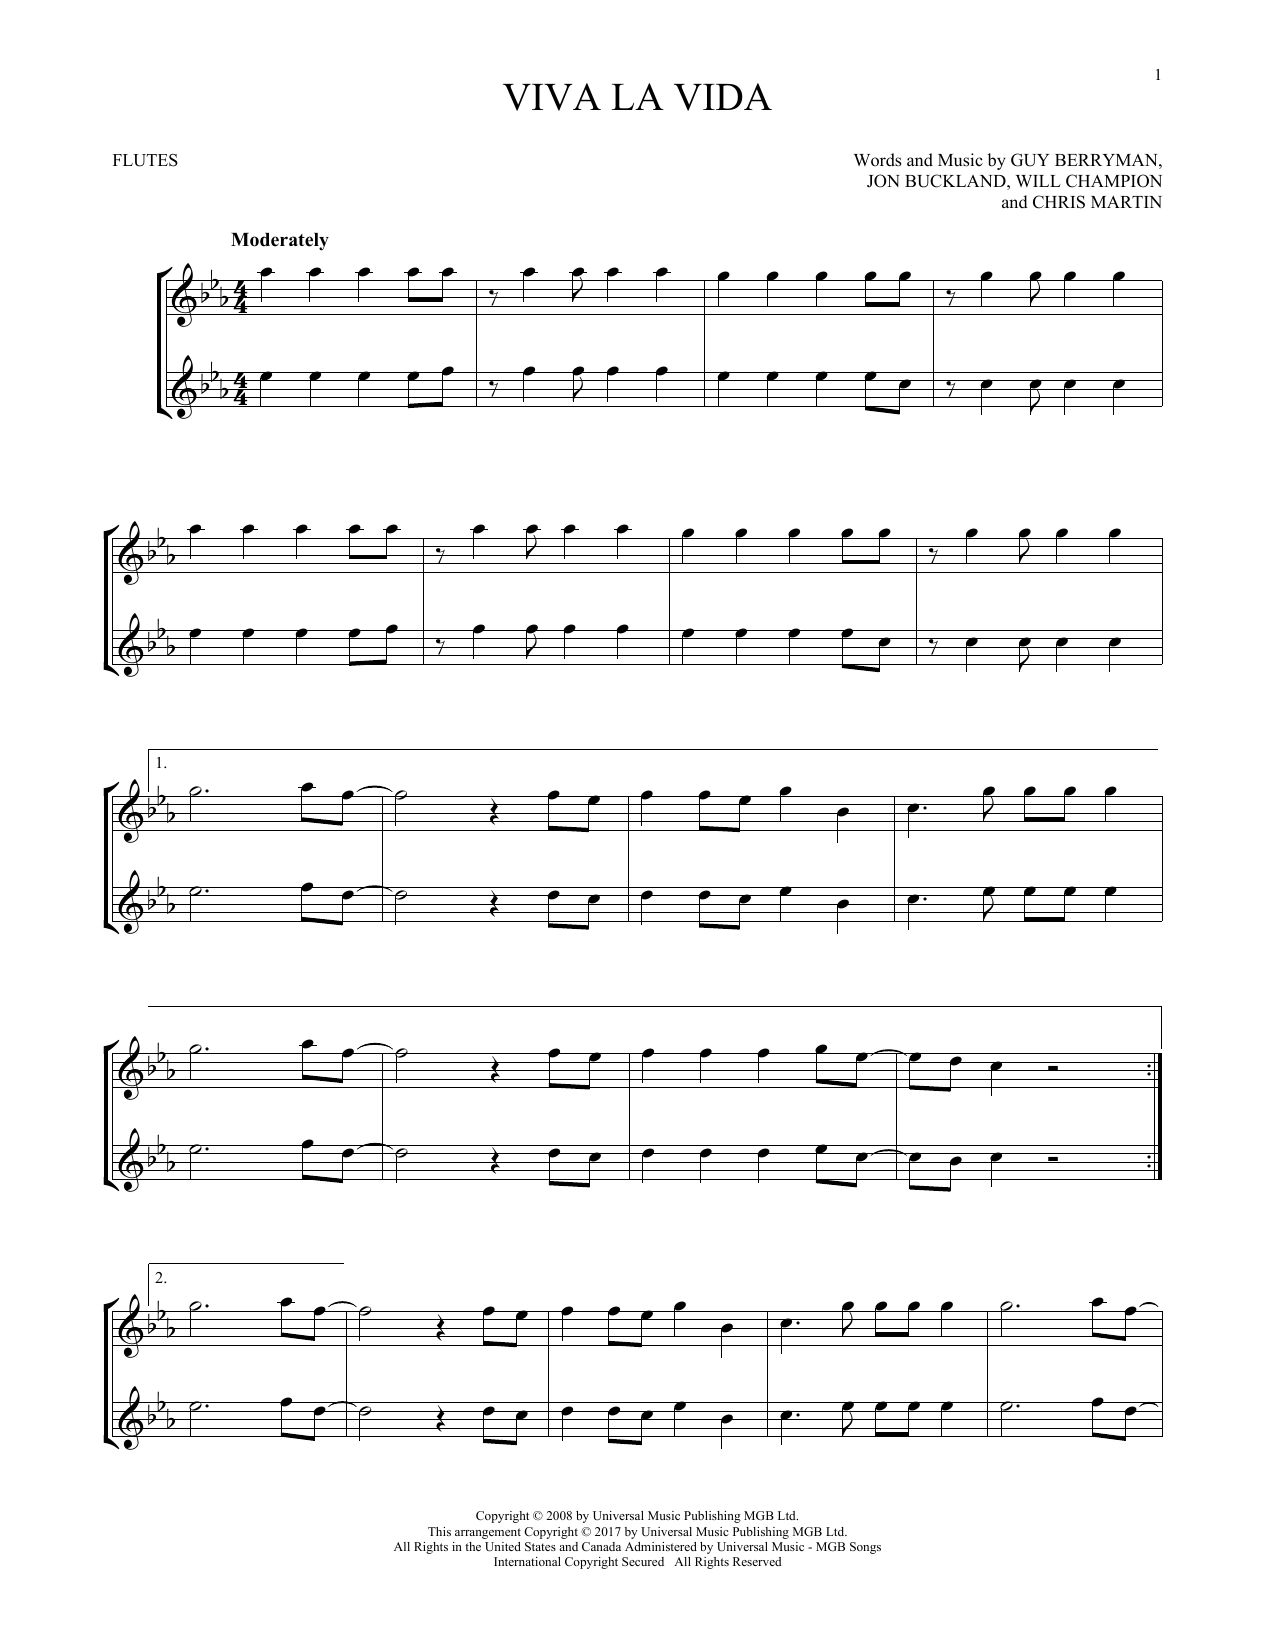 Viva La Vida Chords Sheet Music Digital Files To Print Licensed Guy Berryman Digital